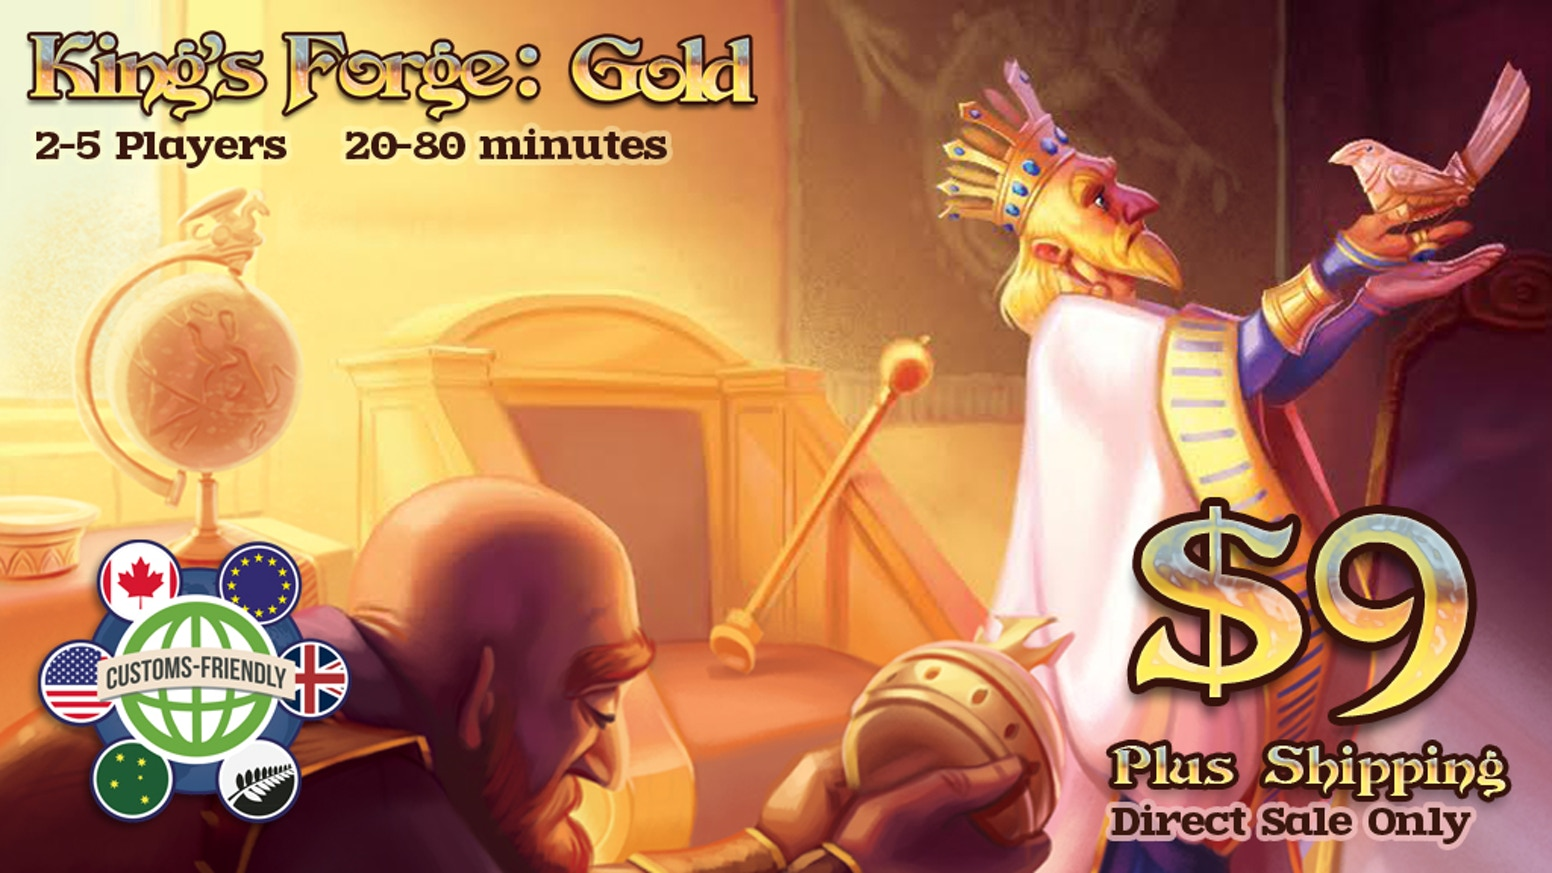 Prosperity flows through the realm—the smithies of King's Forge are all fired up for gold dice, new rules, and engaging scenarios!